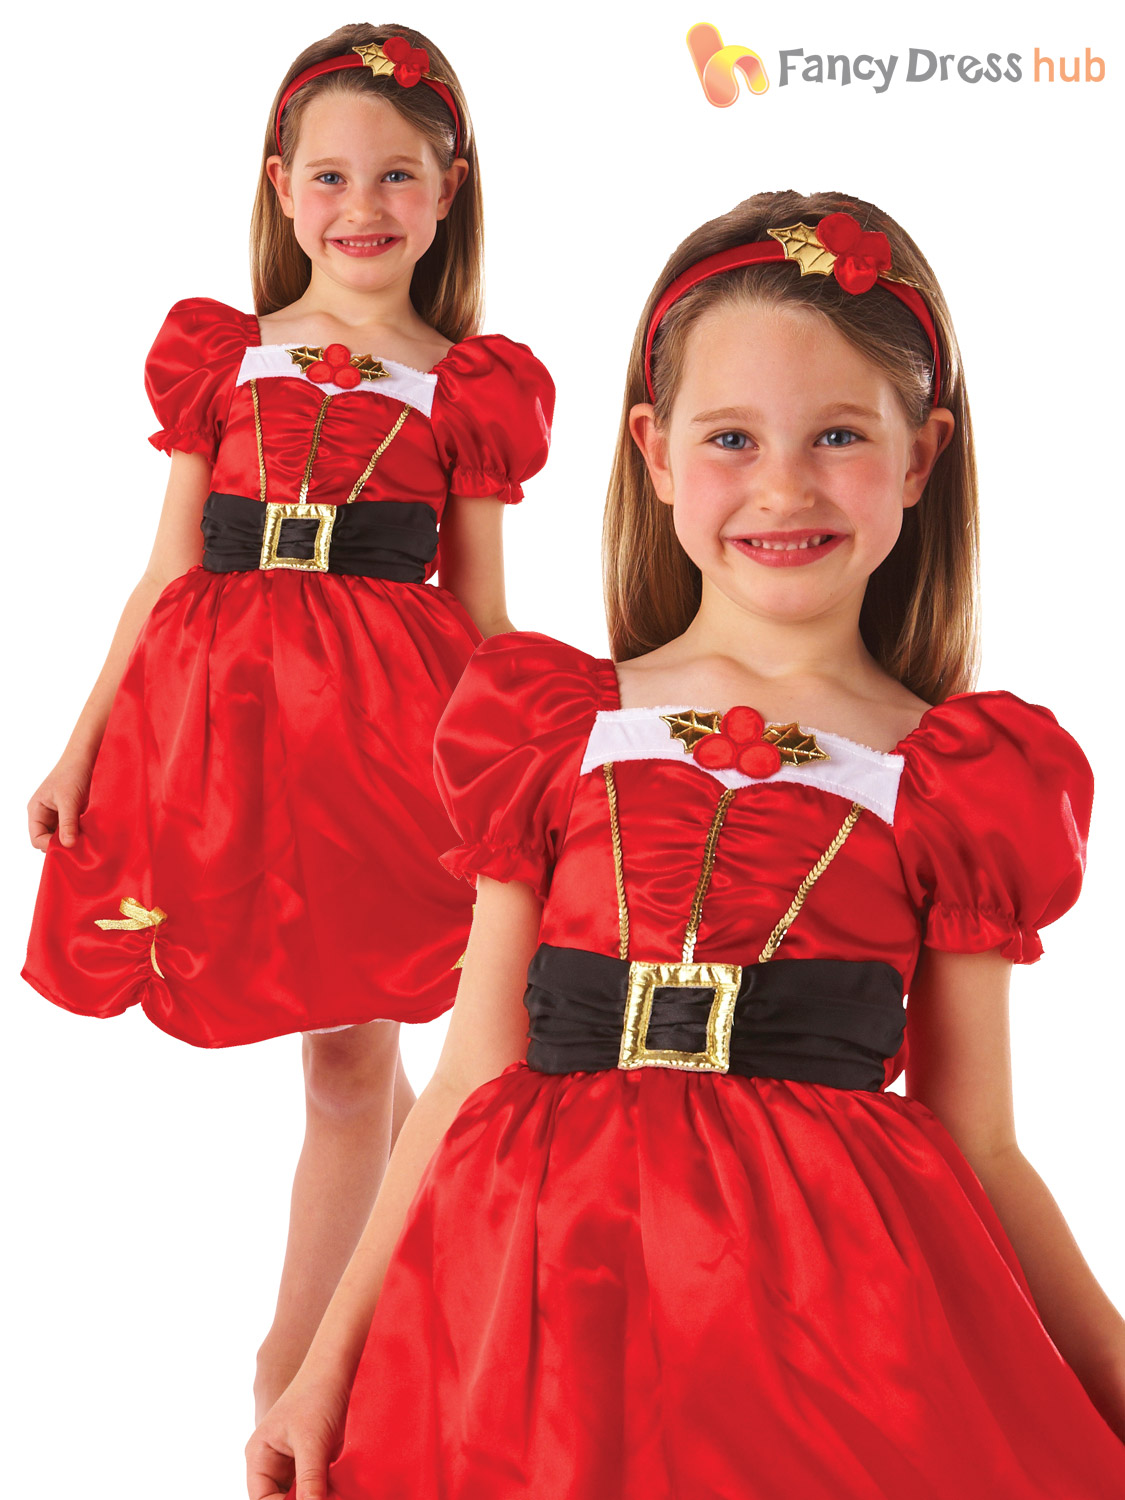 c19683f30b4 Details about Girls Miss Santa Christmas Costume Kids Mrs Claus Xmas Fancy  Dress Outfit Childs